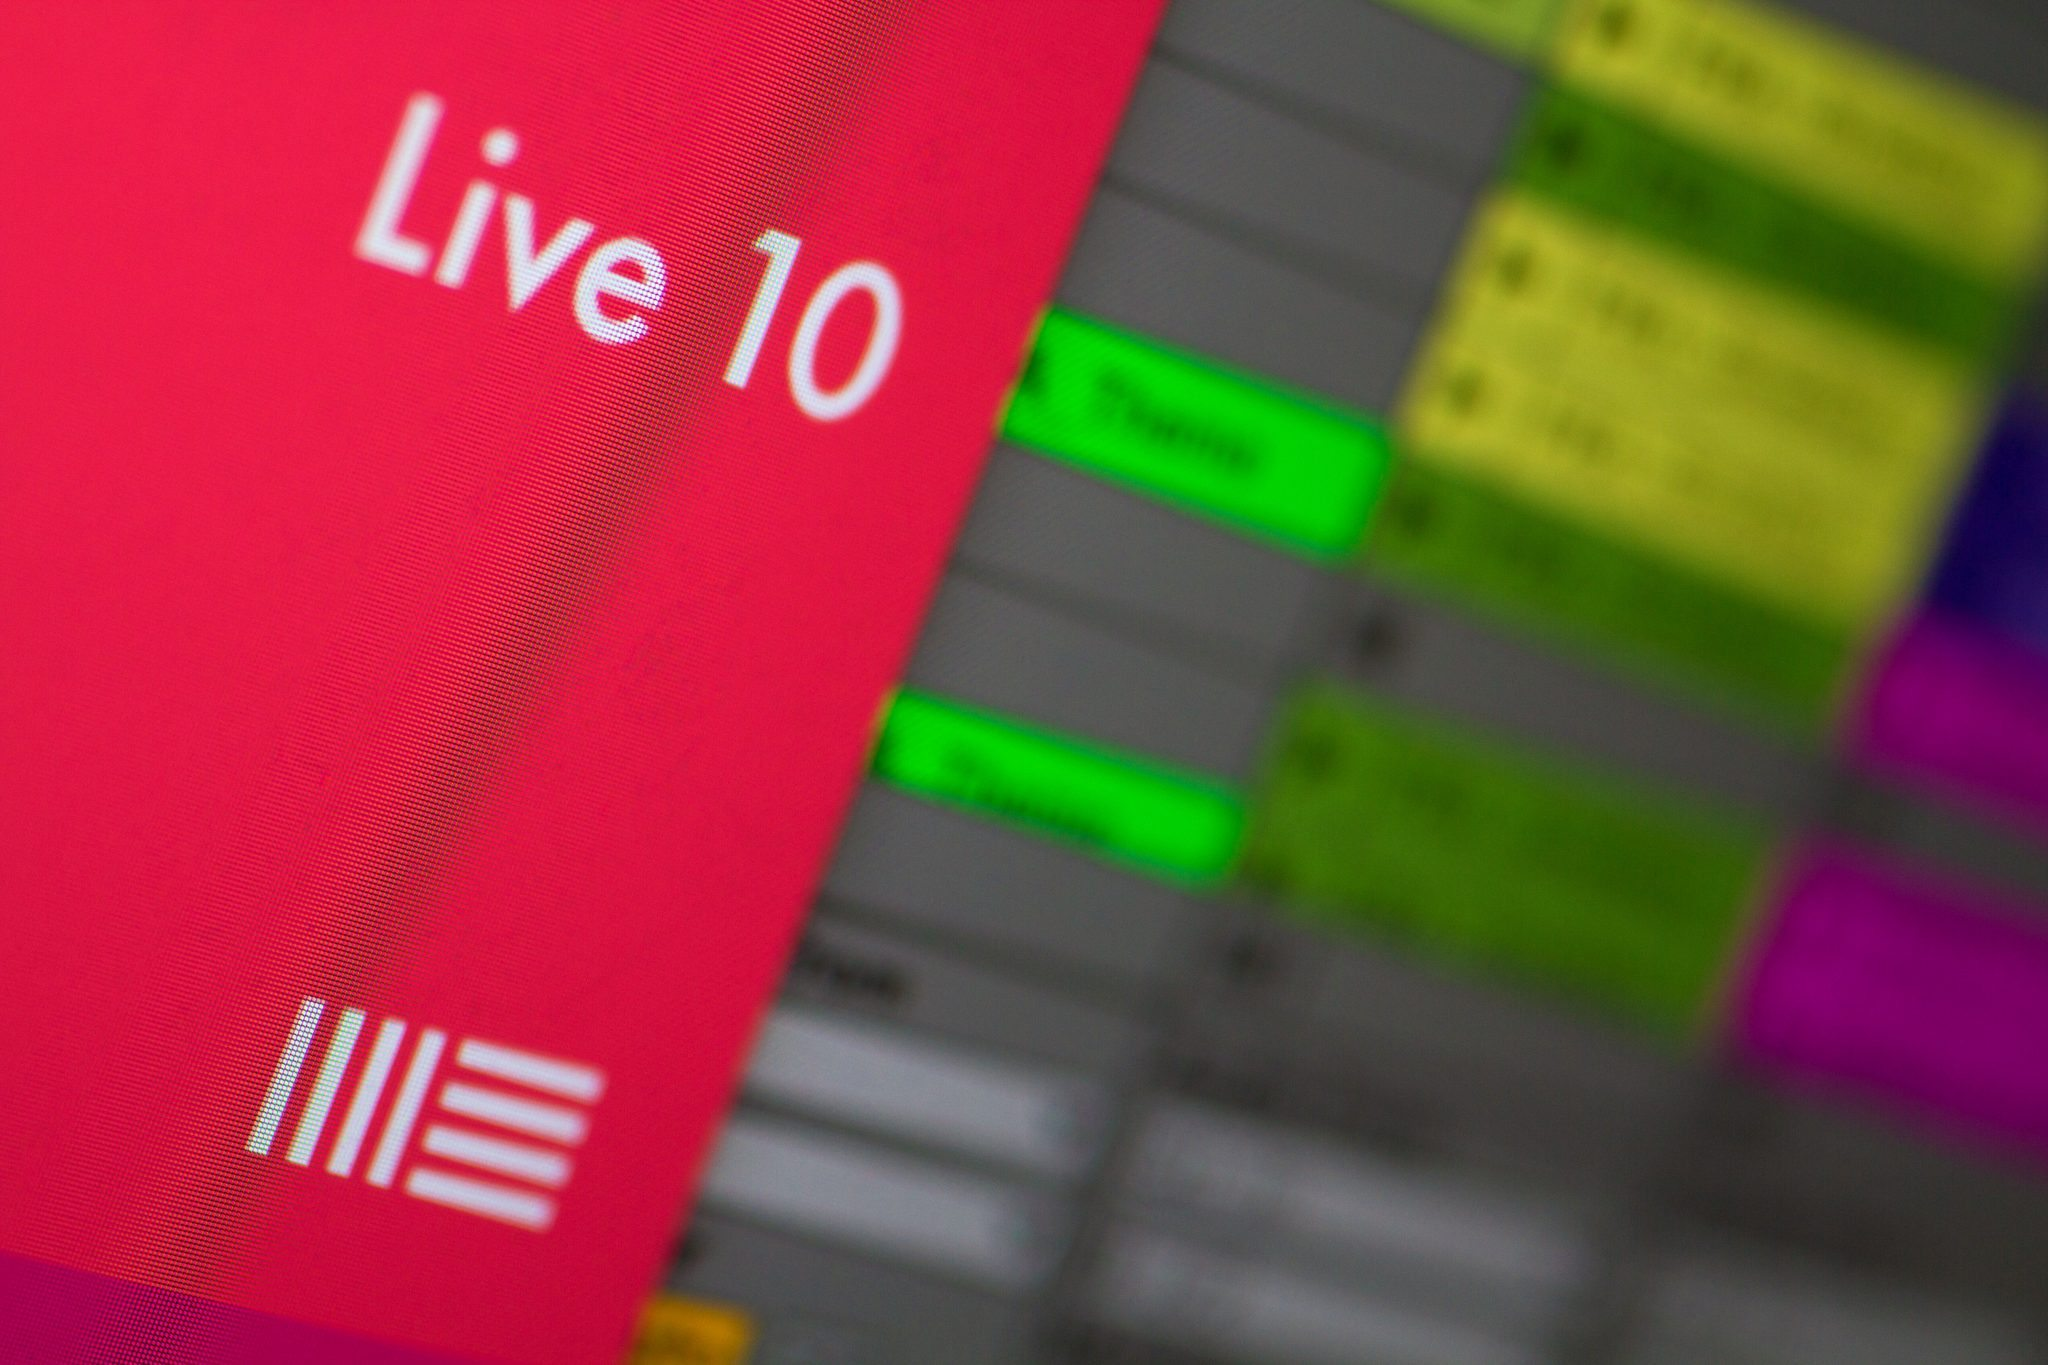 FIRST LOOK: Ray looks at Ableton Live 10 Beta 4